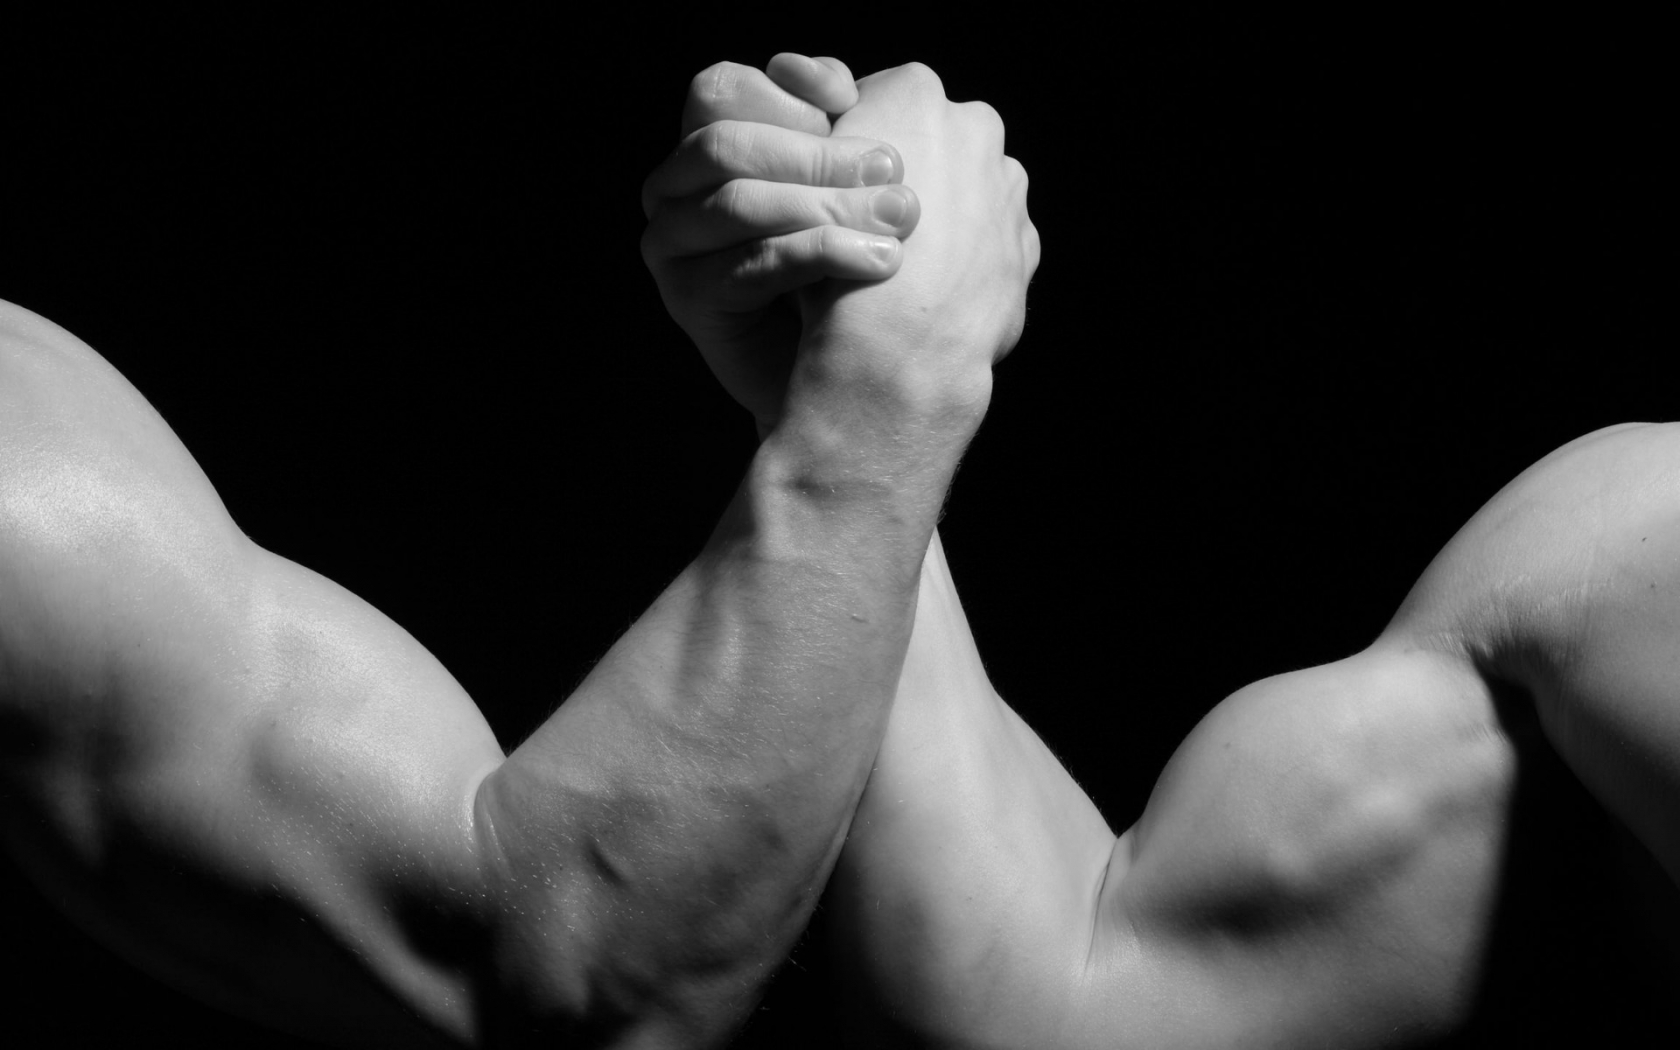 Arm Wrestle for 1680 x 1050 widescreen resolution